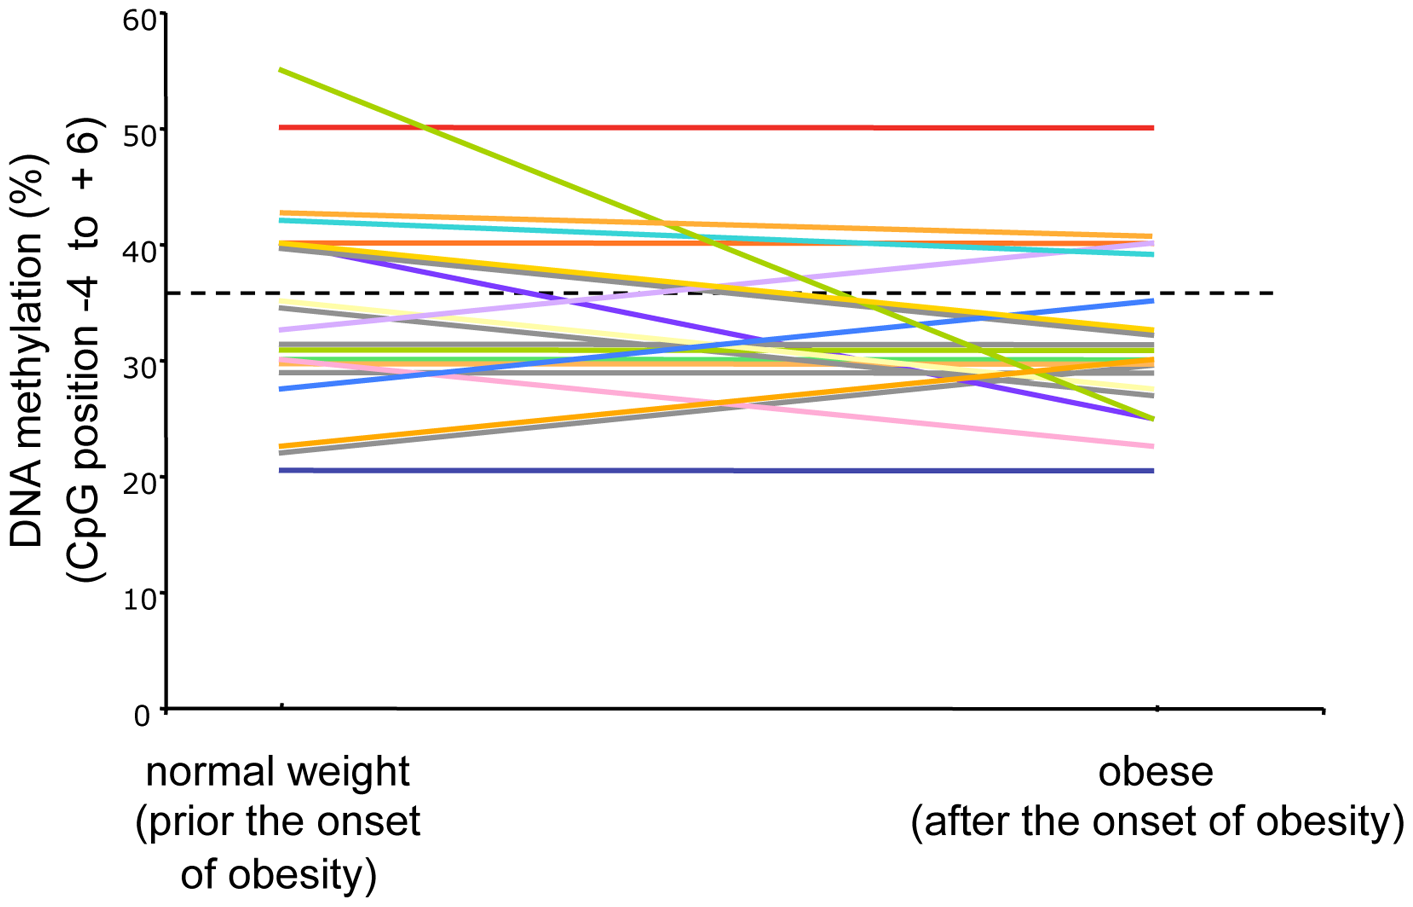 Longitudinal analysis of <i>POMC</i> DNA methylation score (%) (CpG position −4 to +6) before and after the development of obesity in altogether 21 participants of the MAS birth cohort.